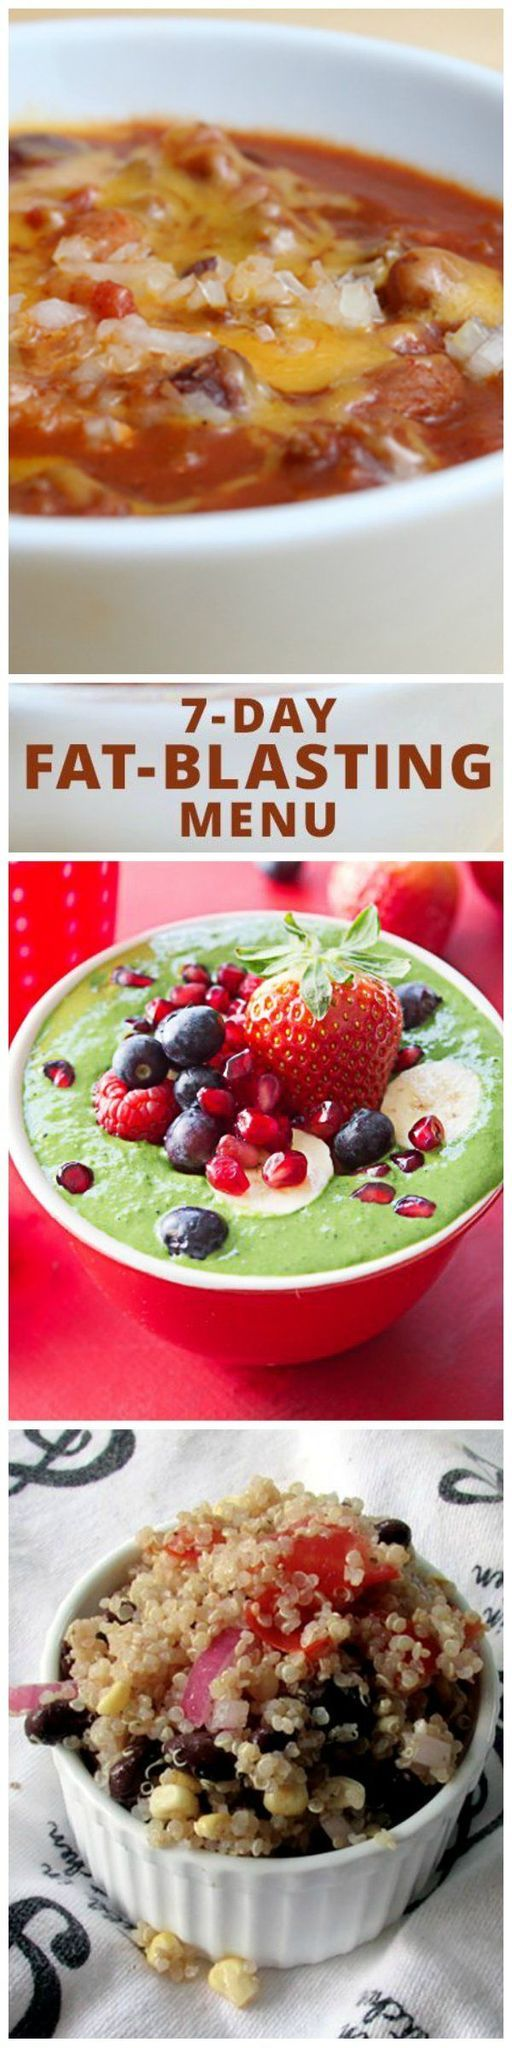 7-Day Fat-Blasting Menu